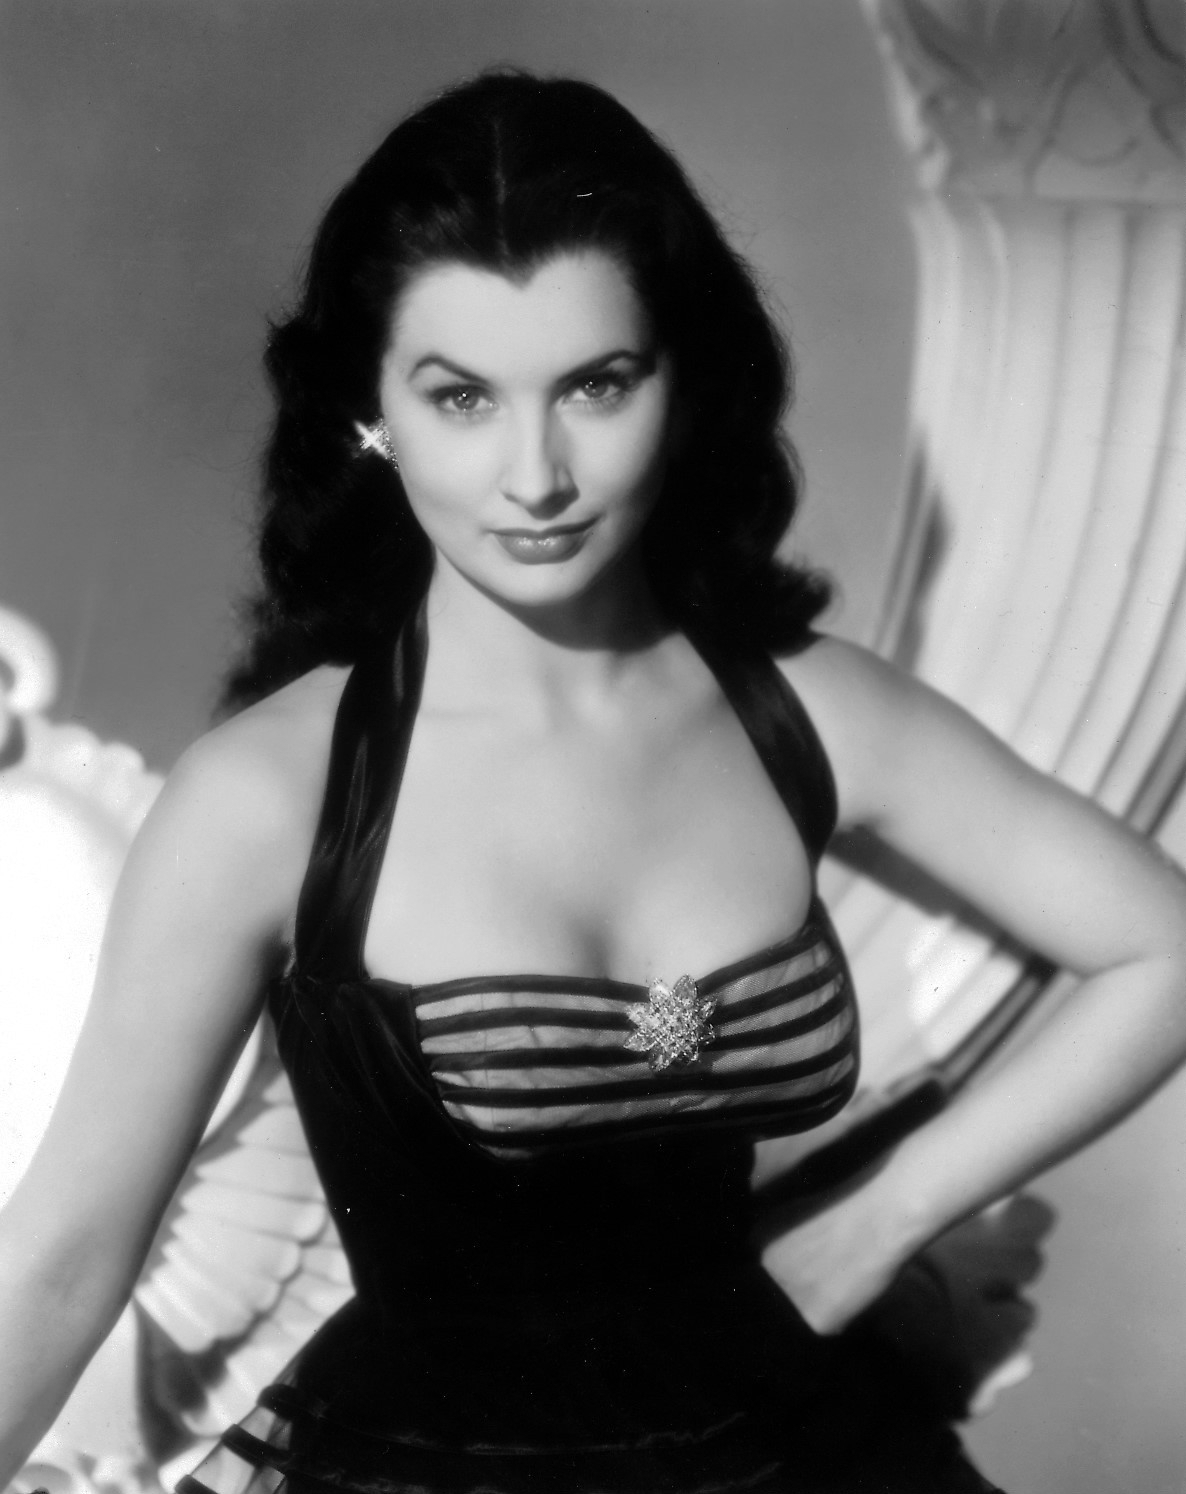 eunice gayson 2016eunice gayson daughter, eunice gayson dr no, eunice gayson now, eunice gayson actress, eunice gayson photos, eunice gayson daughter goldeneye, eunice gayson images, eunice gayson 2016, eunice gayson pictures, eunice gayson feet, eunice gayson hot, eunice gayson biography, eunice gayson 2015, eunice gayson bond girl, eunice gayson height, eunice gayson today